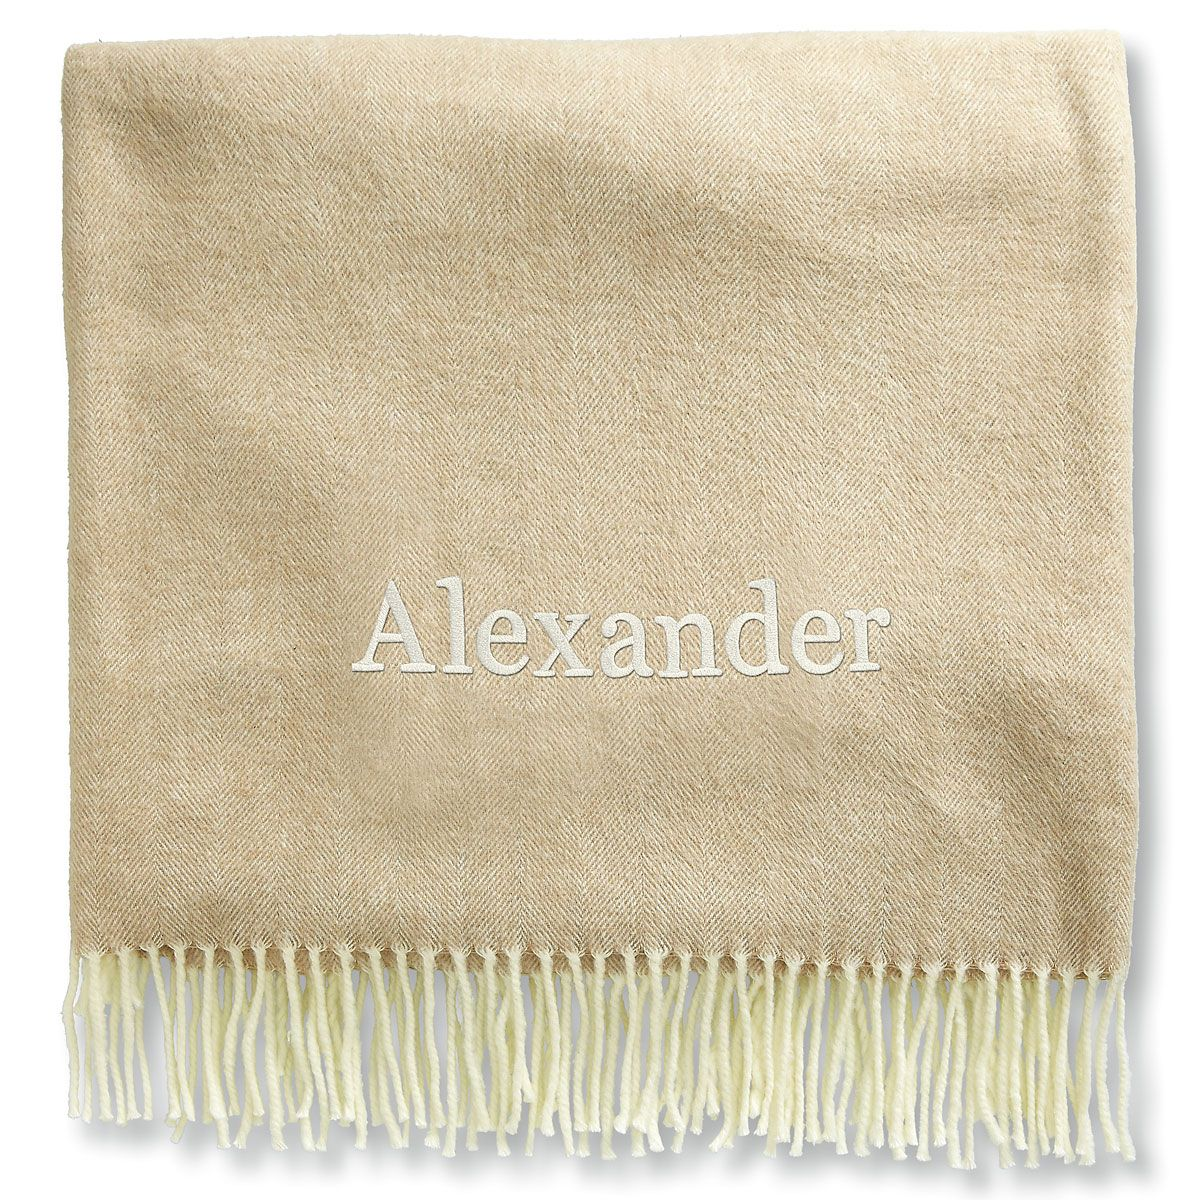 Personalized Blanket with Name-Khaki-816104A